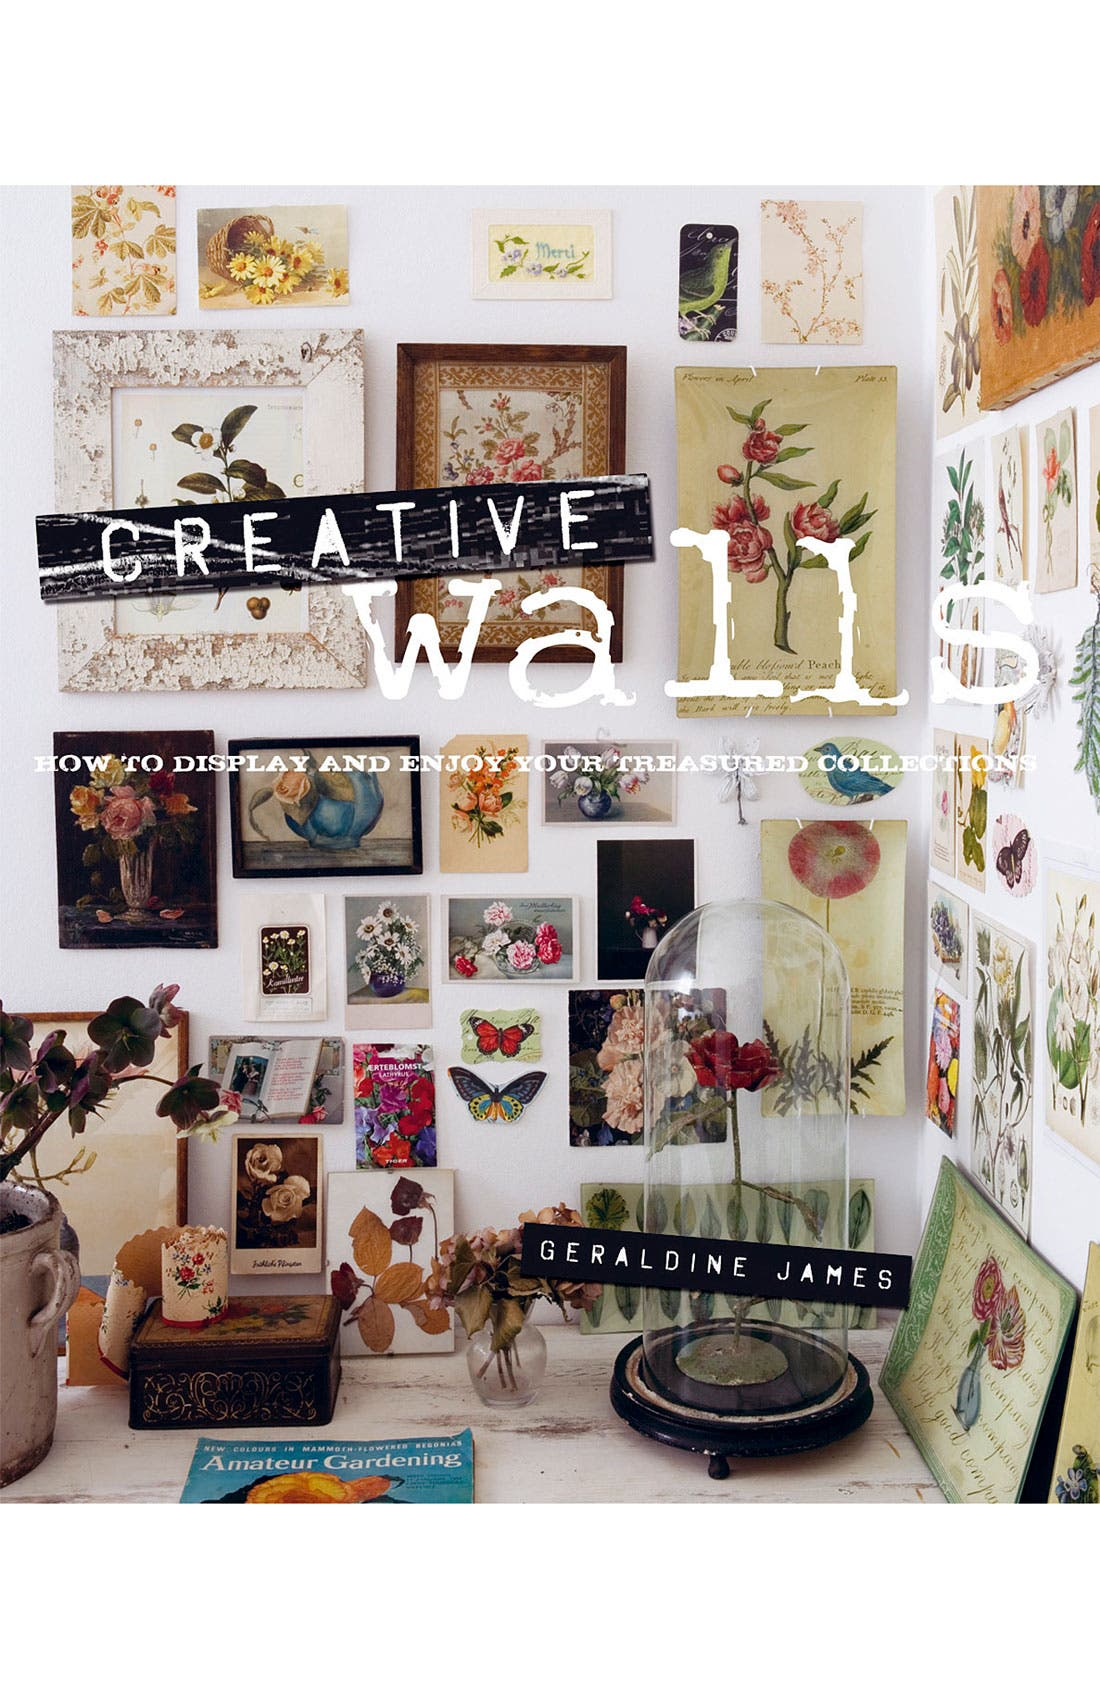 Main Image - Geraldine James 'Creative Walls' Interior Design Book